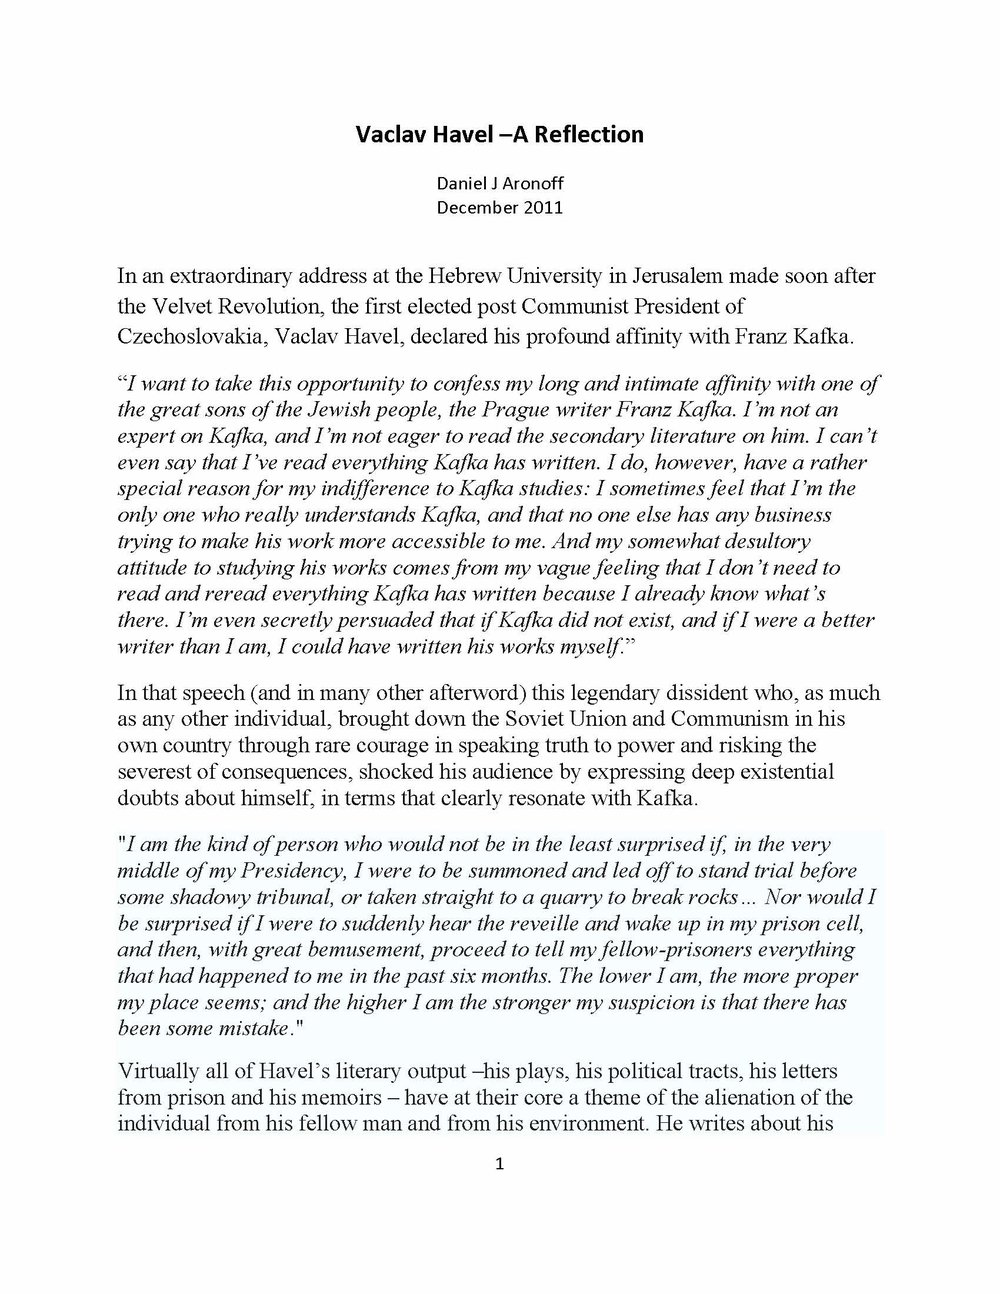 Vaclav Havel -A Reflection_Page_1.jpg